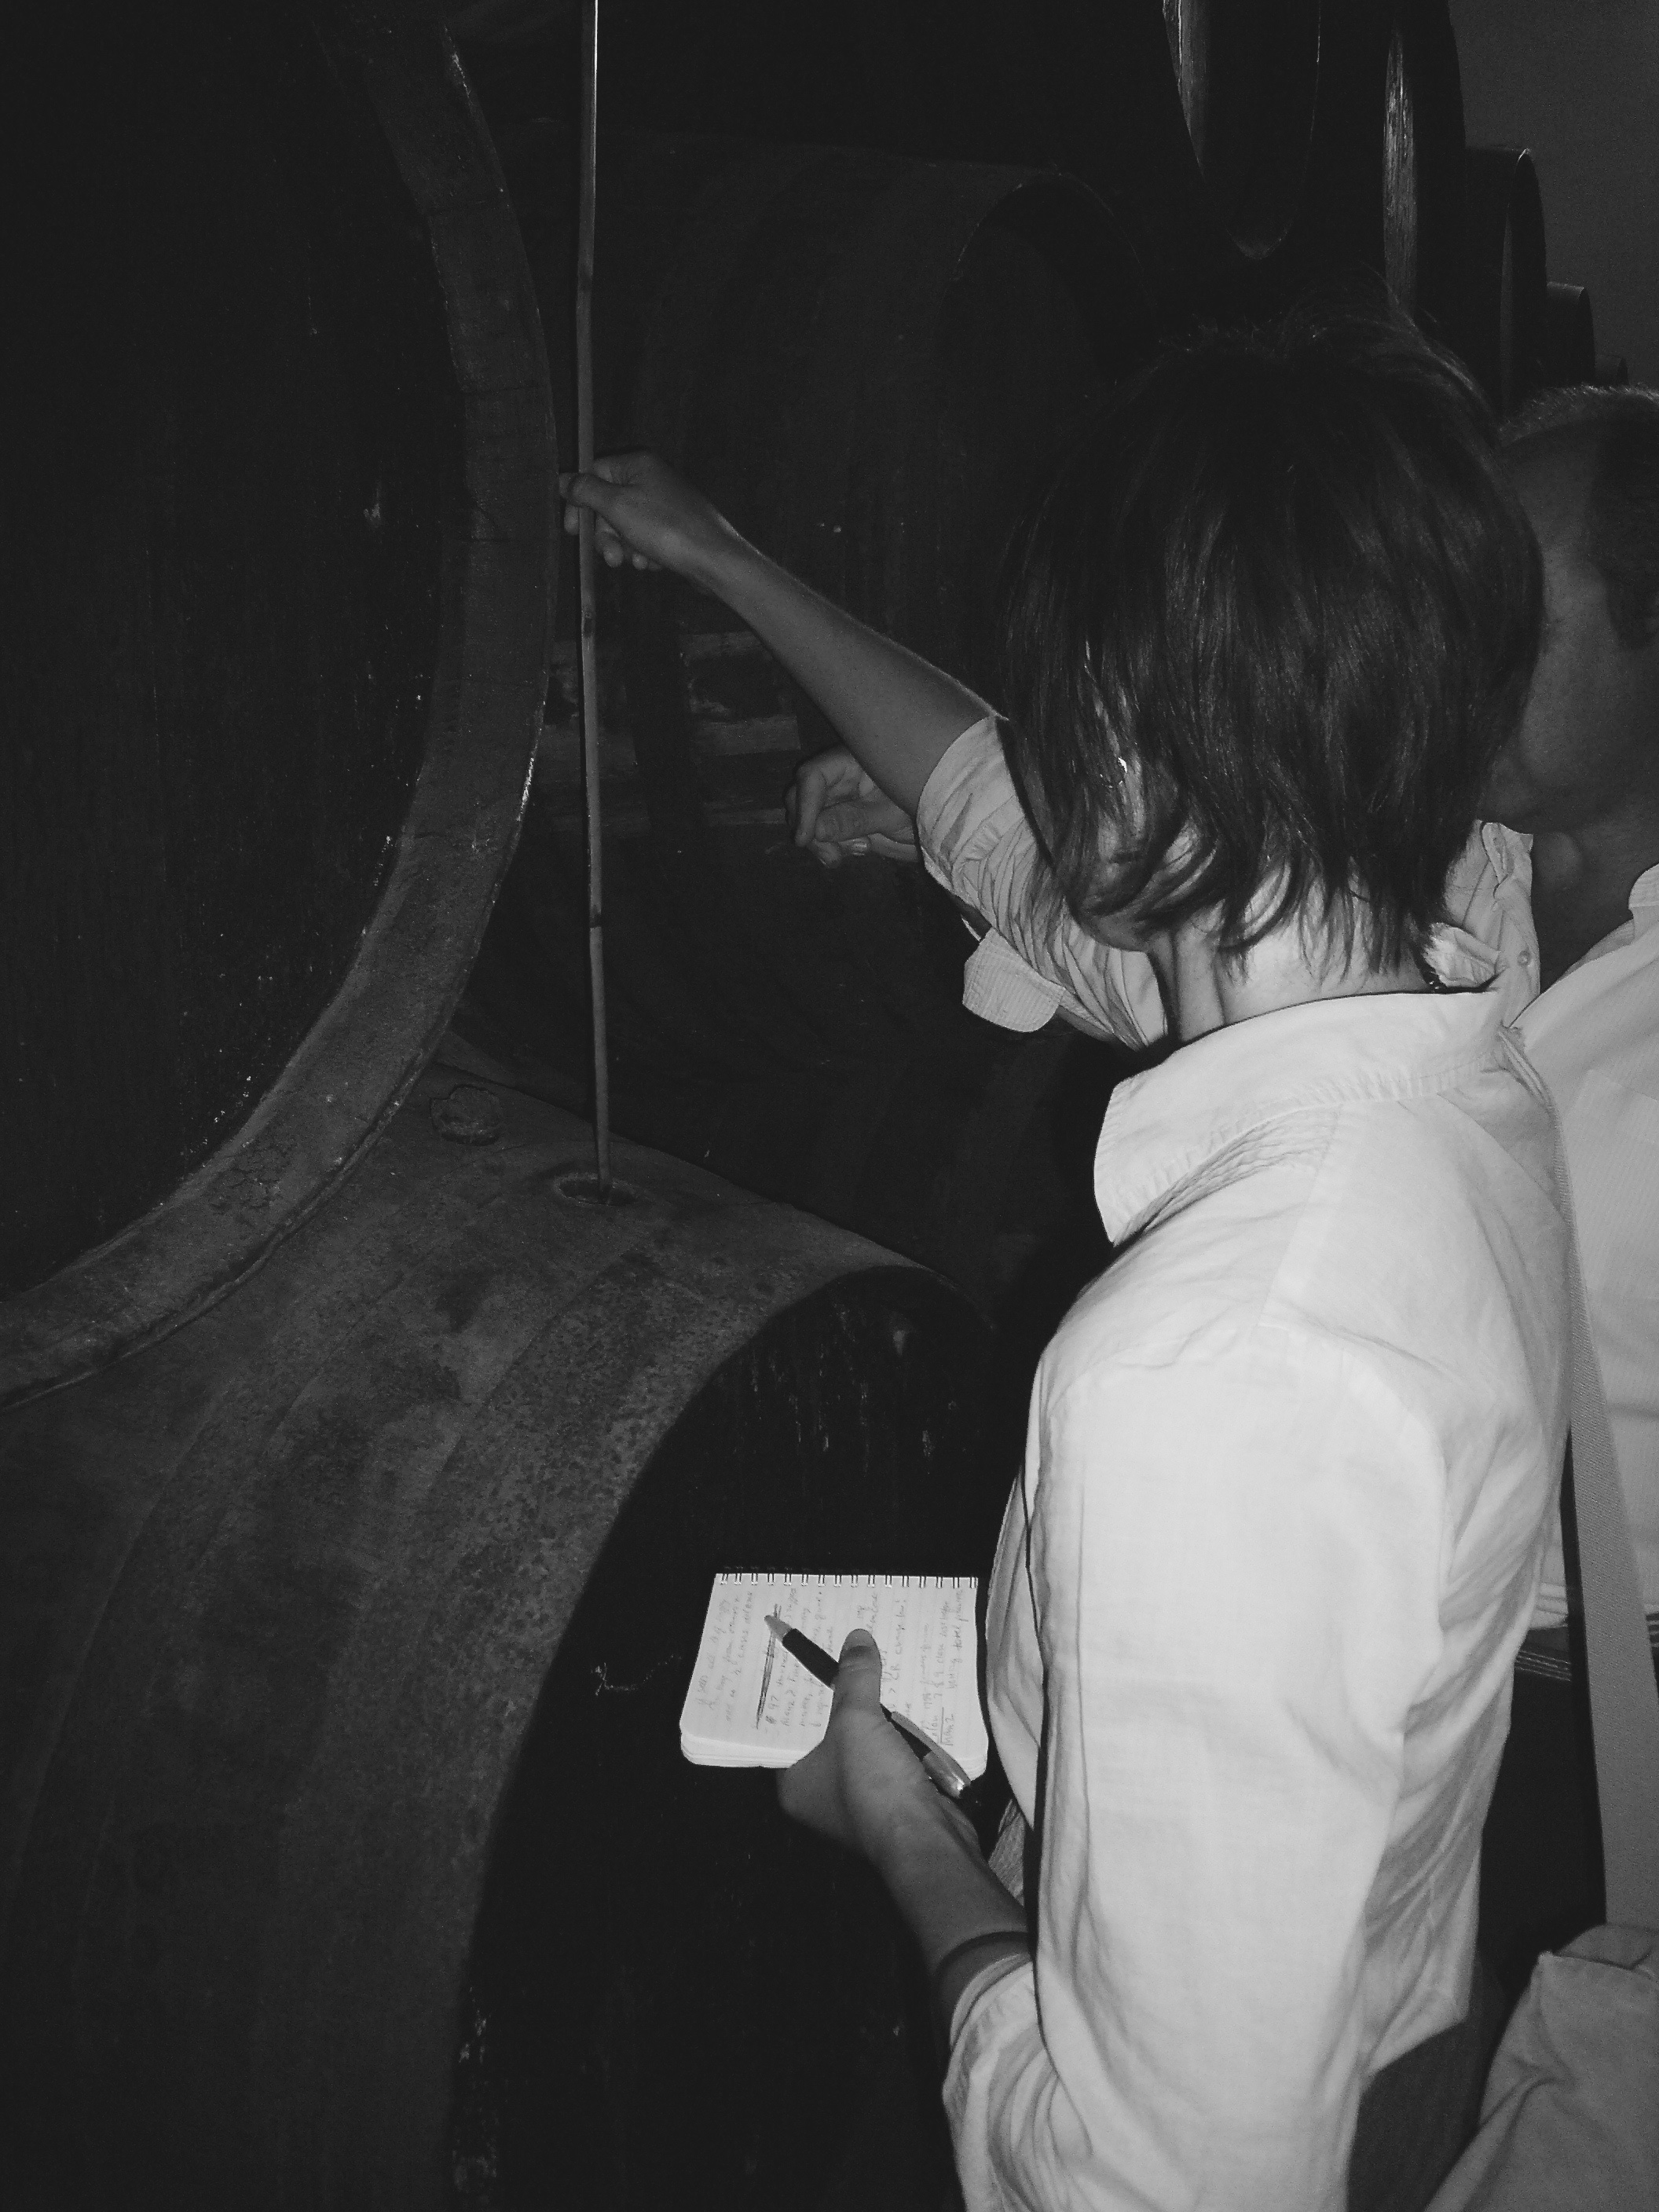 Learning the distinction between extracting samples in Sanlúcar v. Jerez at La Cigarrera | Sanlúcar de Barrameda (Sept. 2009)